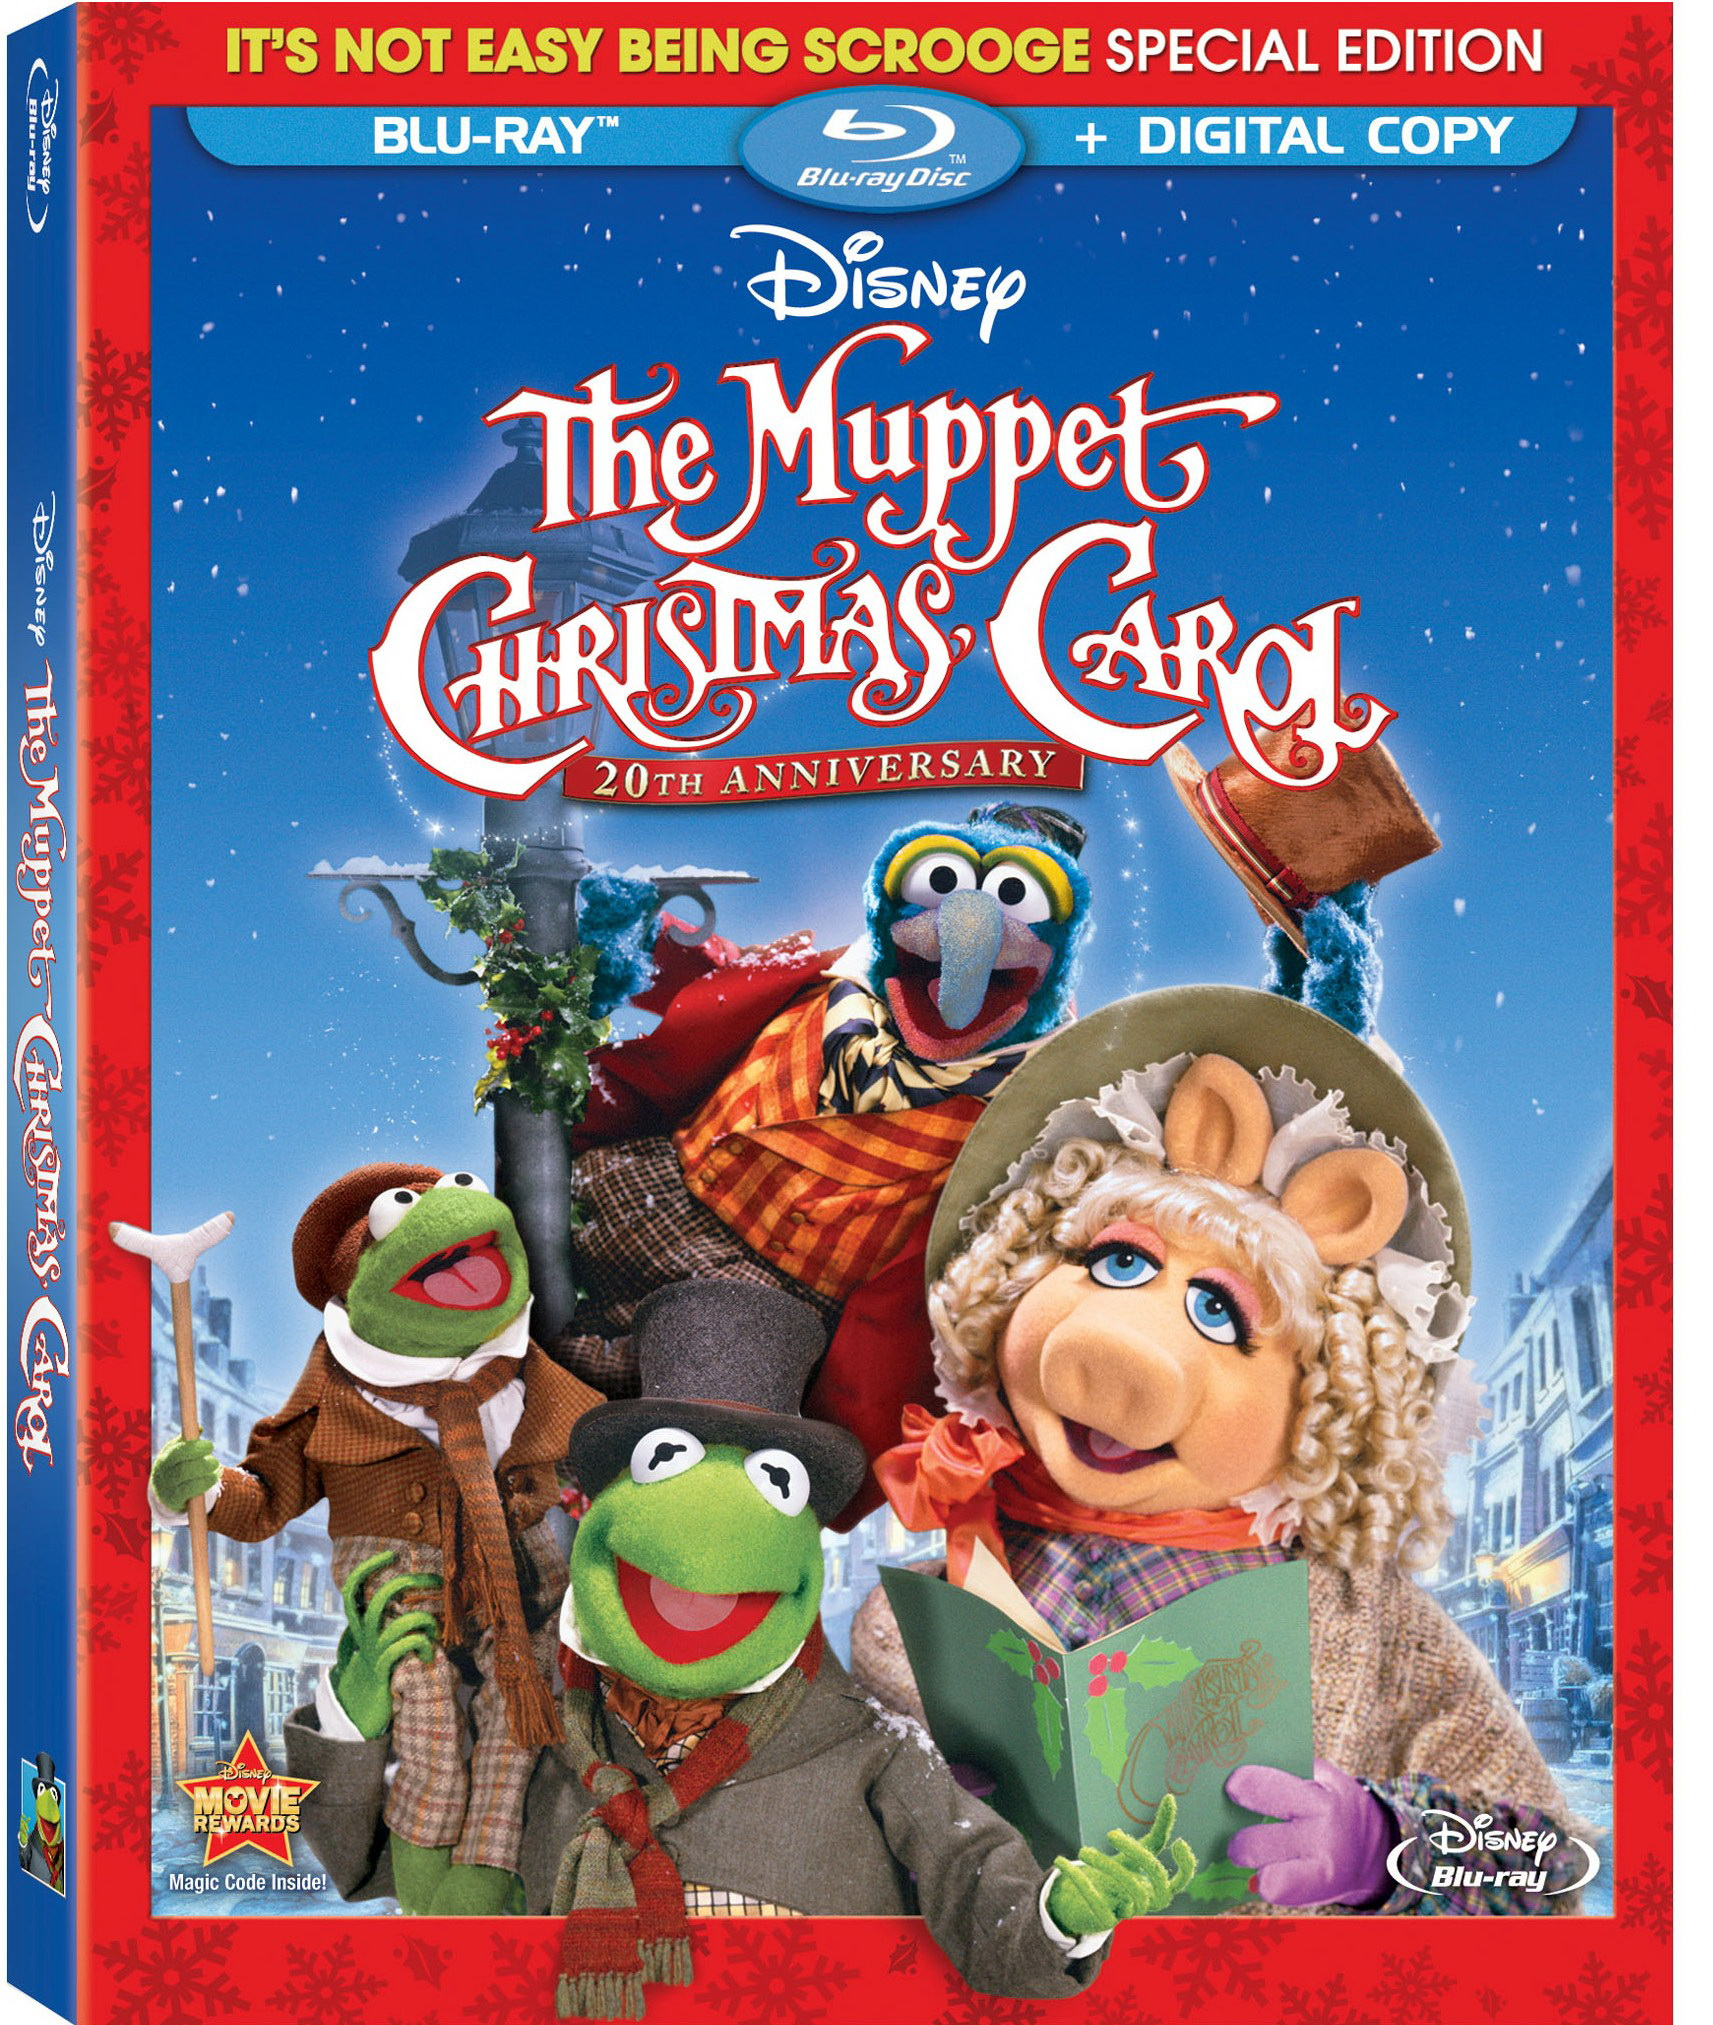 The Muppet Christmas Carol Blu-ray Review | The Muppet Mindset